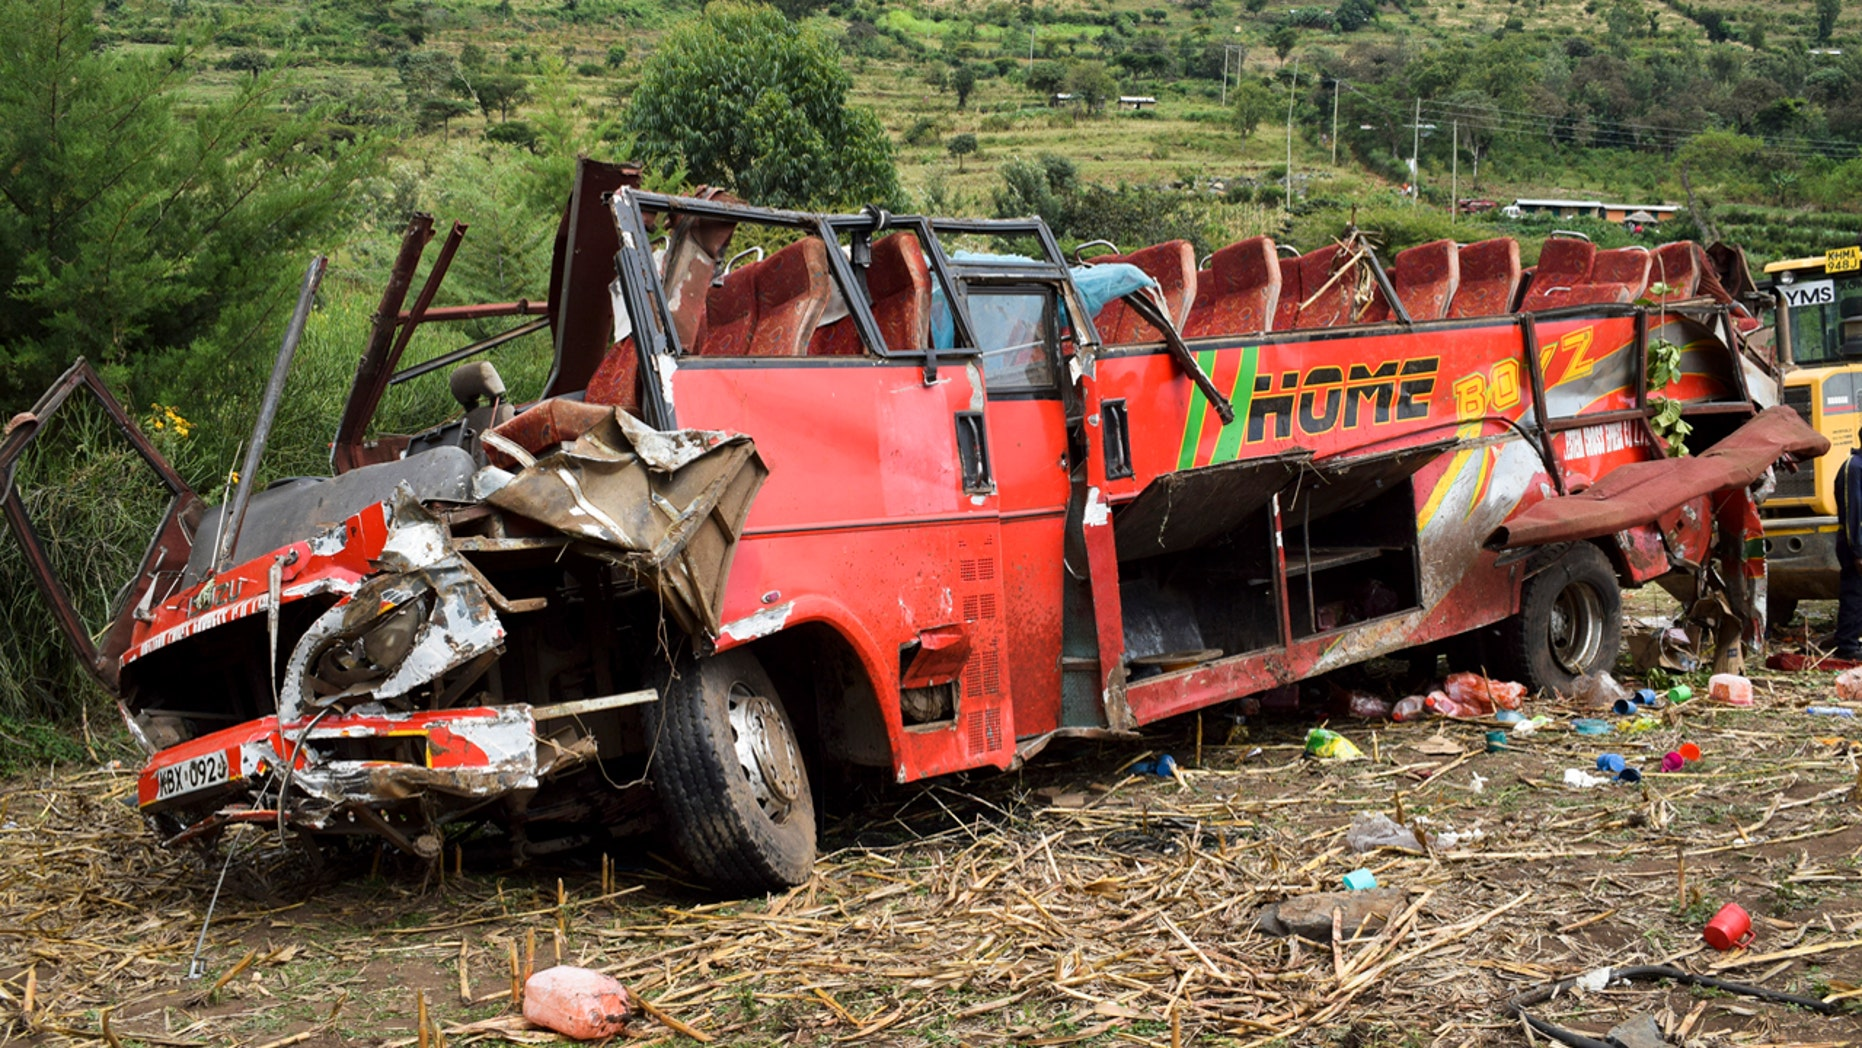 The wrecked bus is seen at the scene of a bus crash near Kericho in western Kenya Wednesday, Oct. 10, 2018. An official says at least 50 people have died after the bus they were traveling in left the road, rolled down a slope and crashed near the western Kenyan town of Kericho.